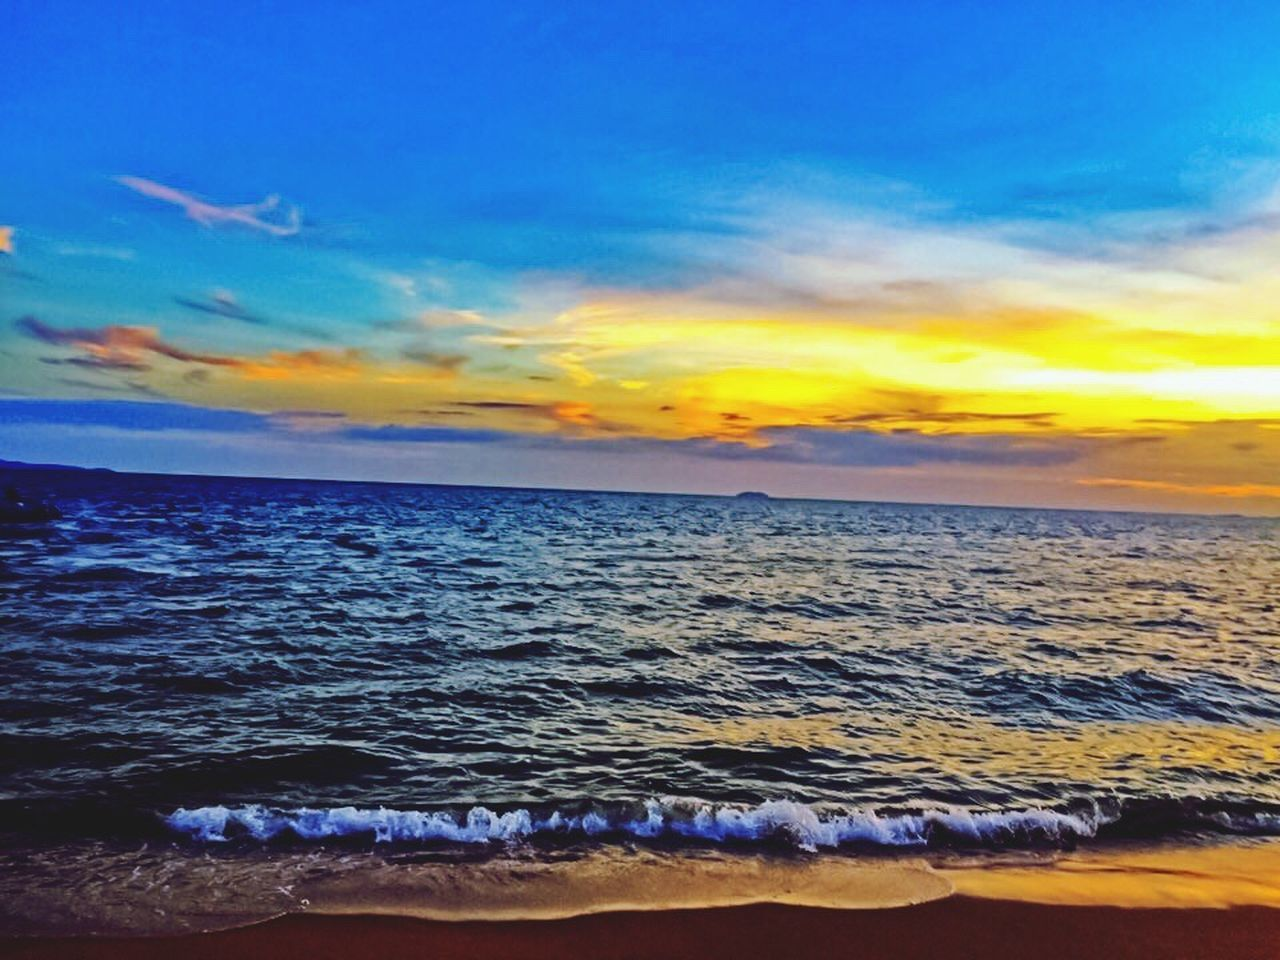 sea, sunset, beauty in nature, scenics, nature, water, horizon over water, sky, beach, tranquil scene, wave, tranquility, idyllic, no people, cloud - sky, outdoors, sand, vacations, day